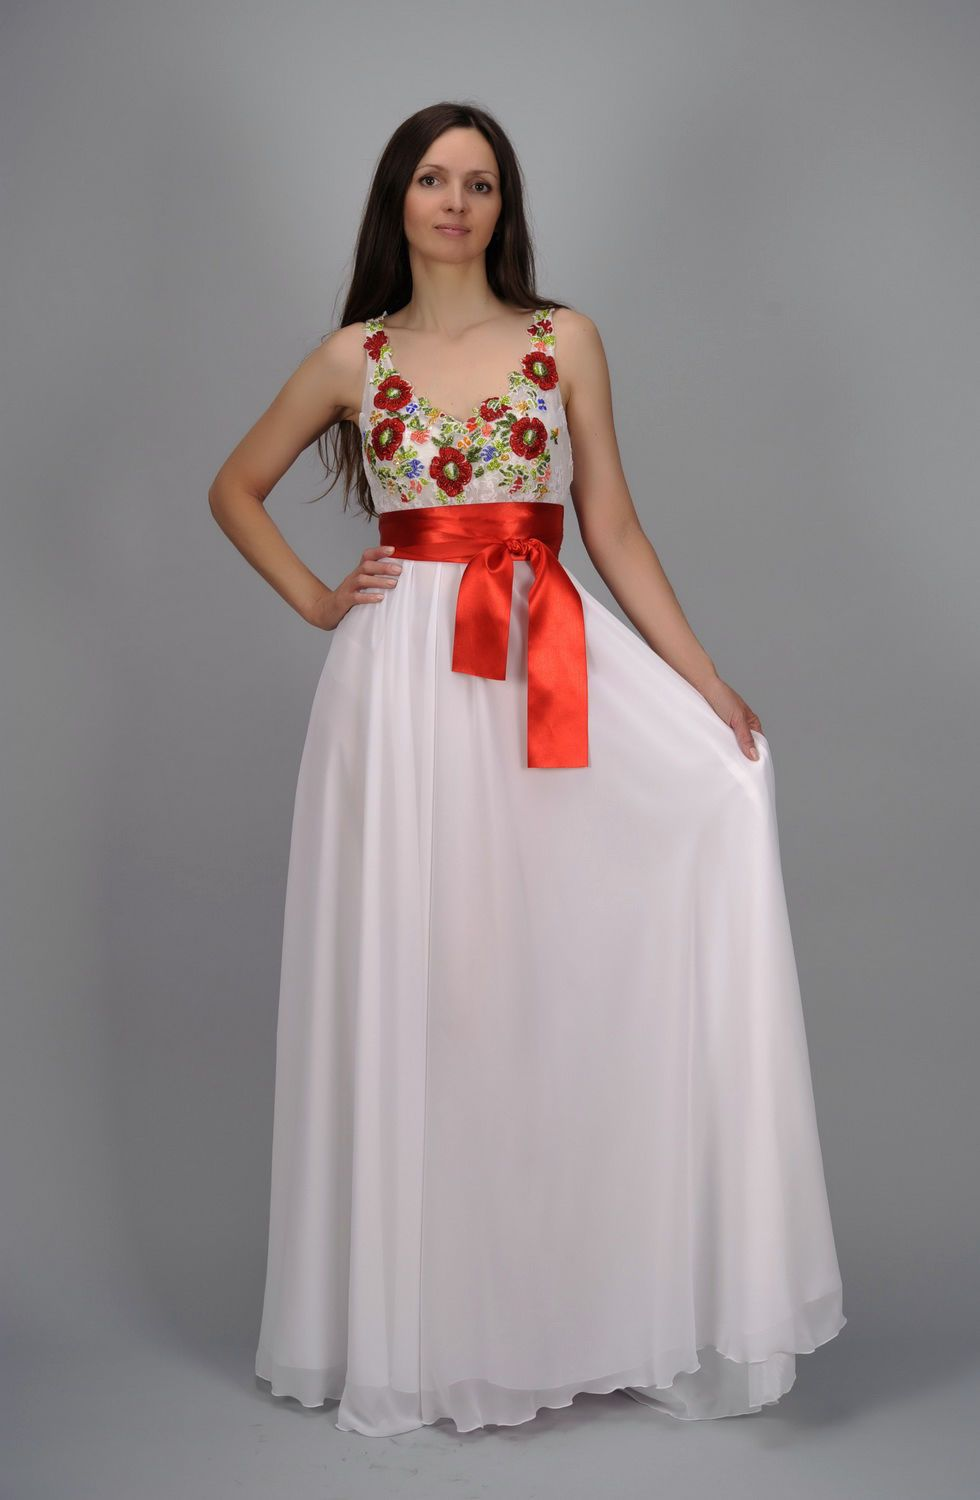 clothes Evening dress with beaded embroidery - MADEheart.com